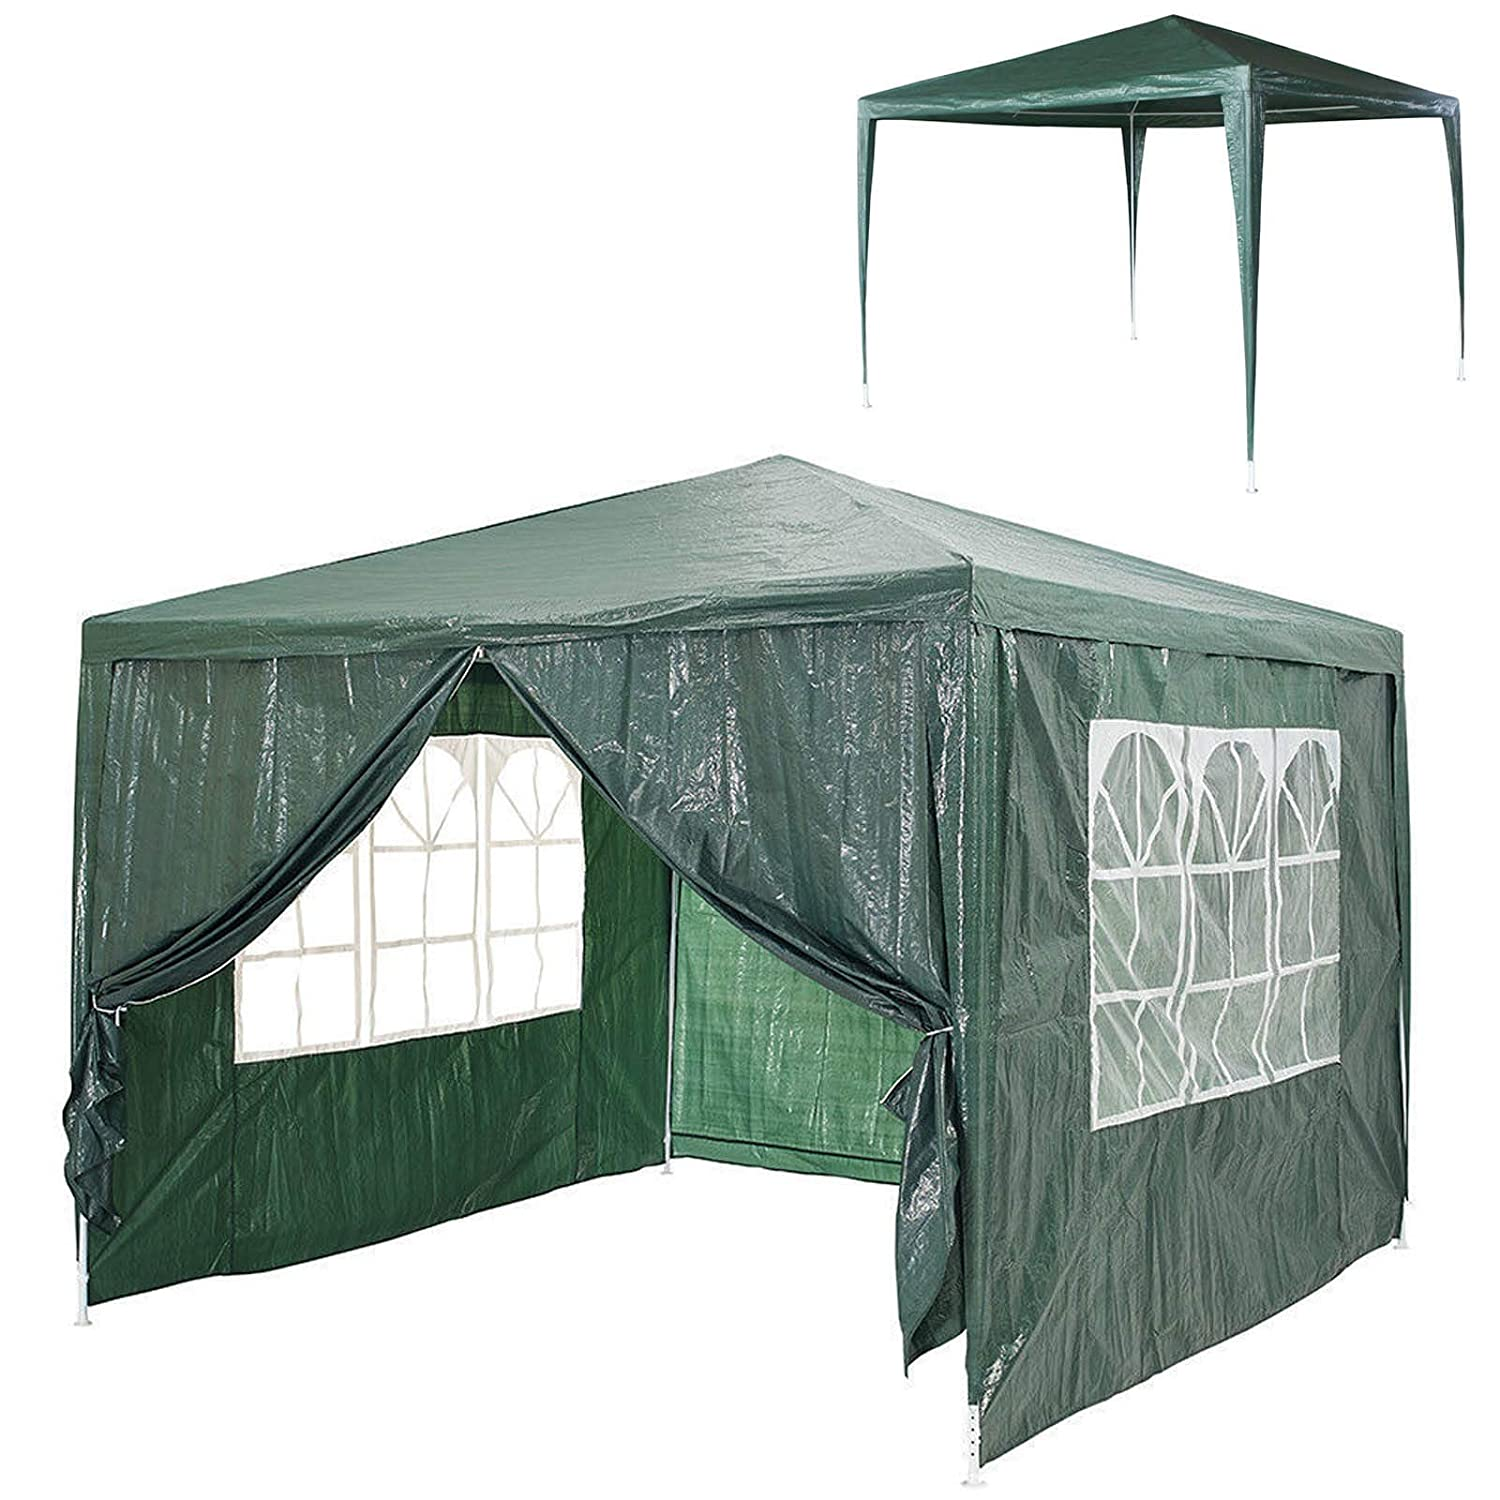 Bowose Outdoors Gazebo 3x3M with 4 Removable Side Walls while 3 with Windows 1 with Zip Garden Marquee Waterproof Canopy Tent (Green)